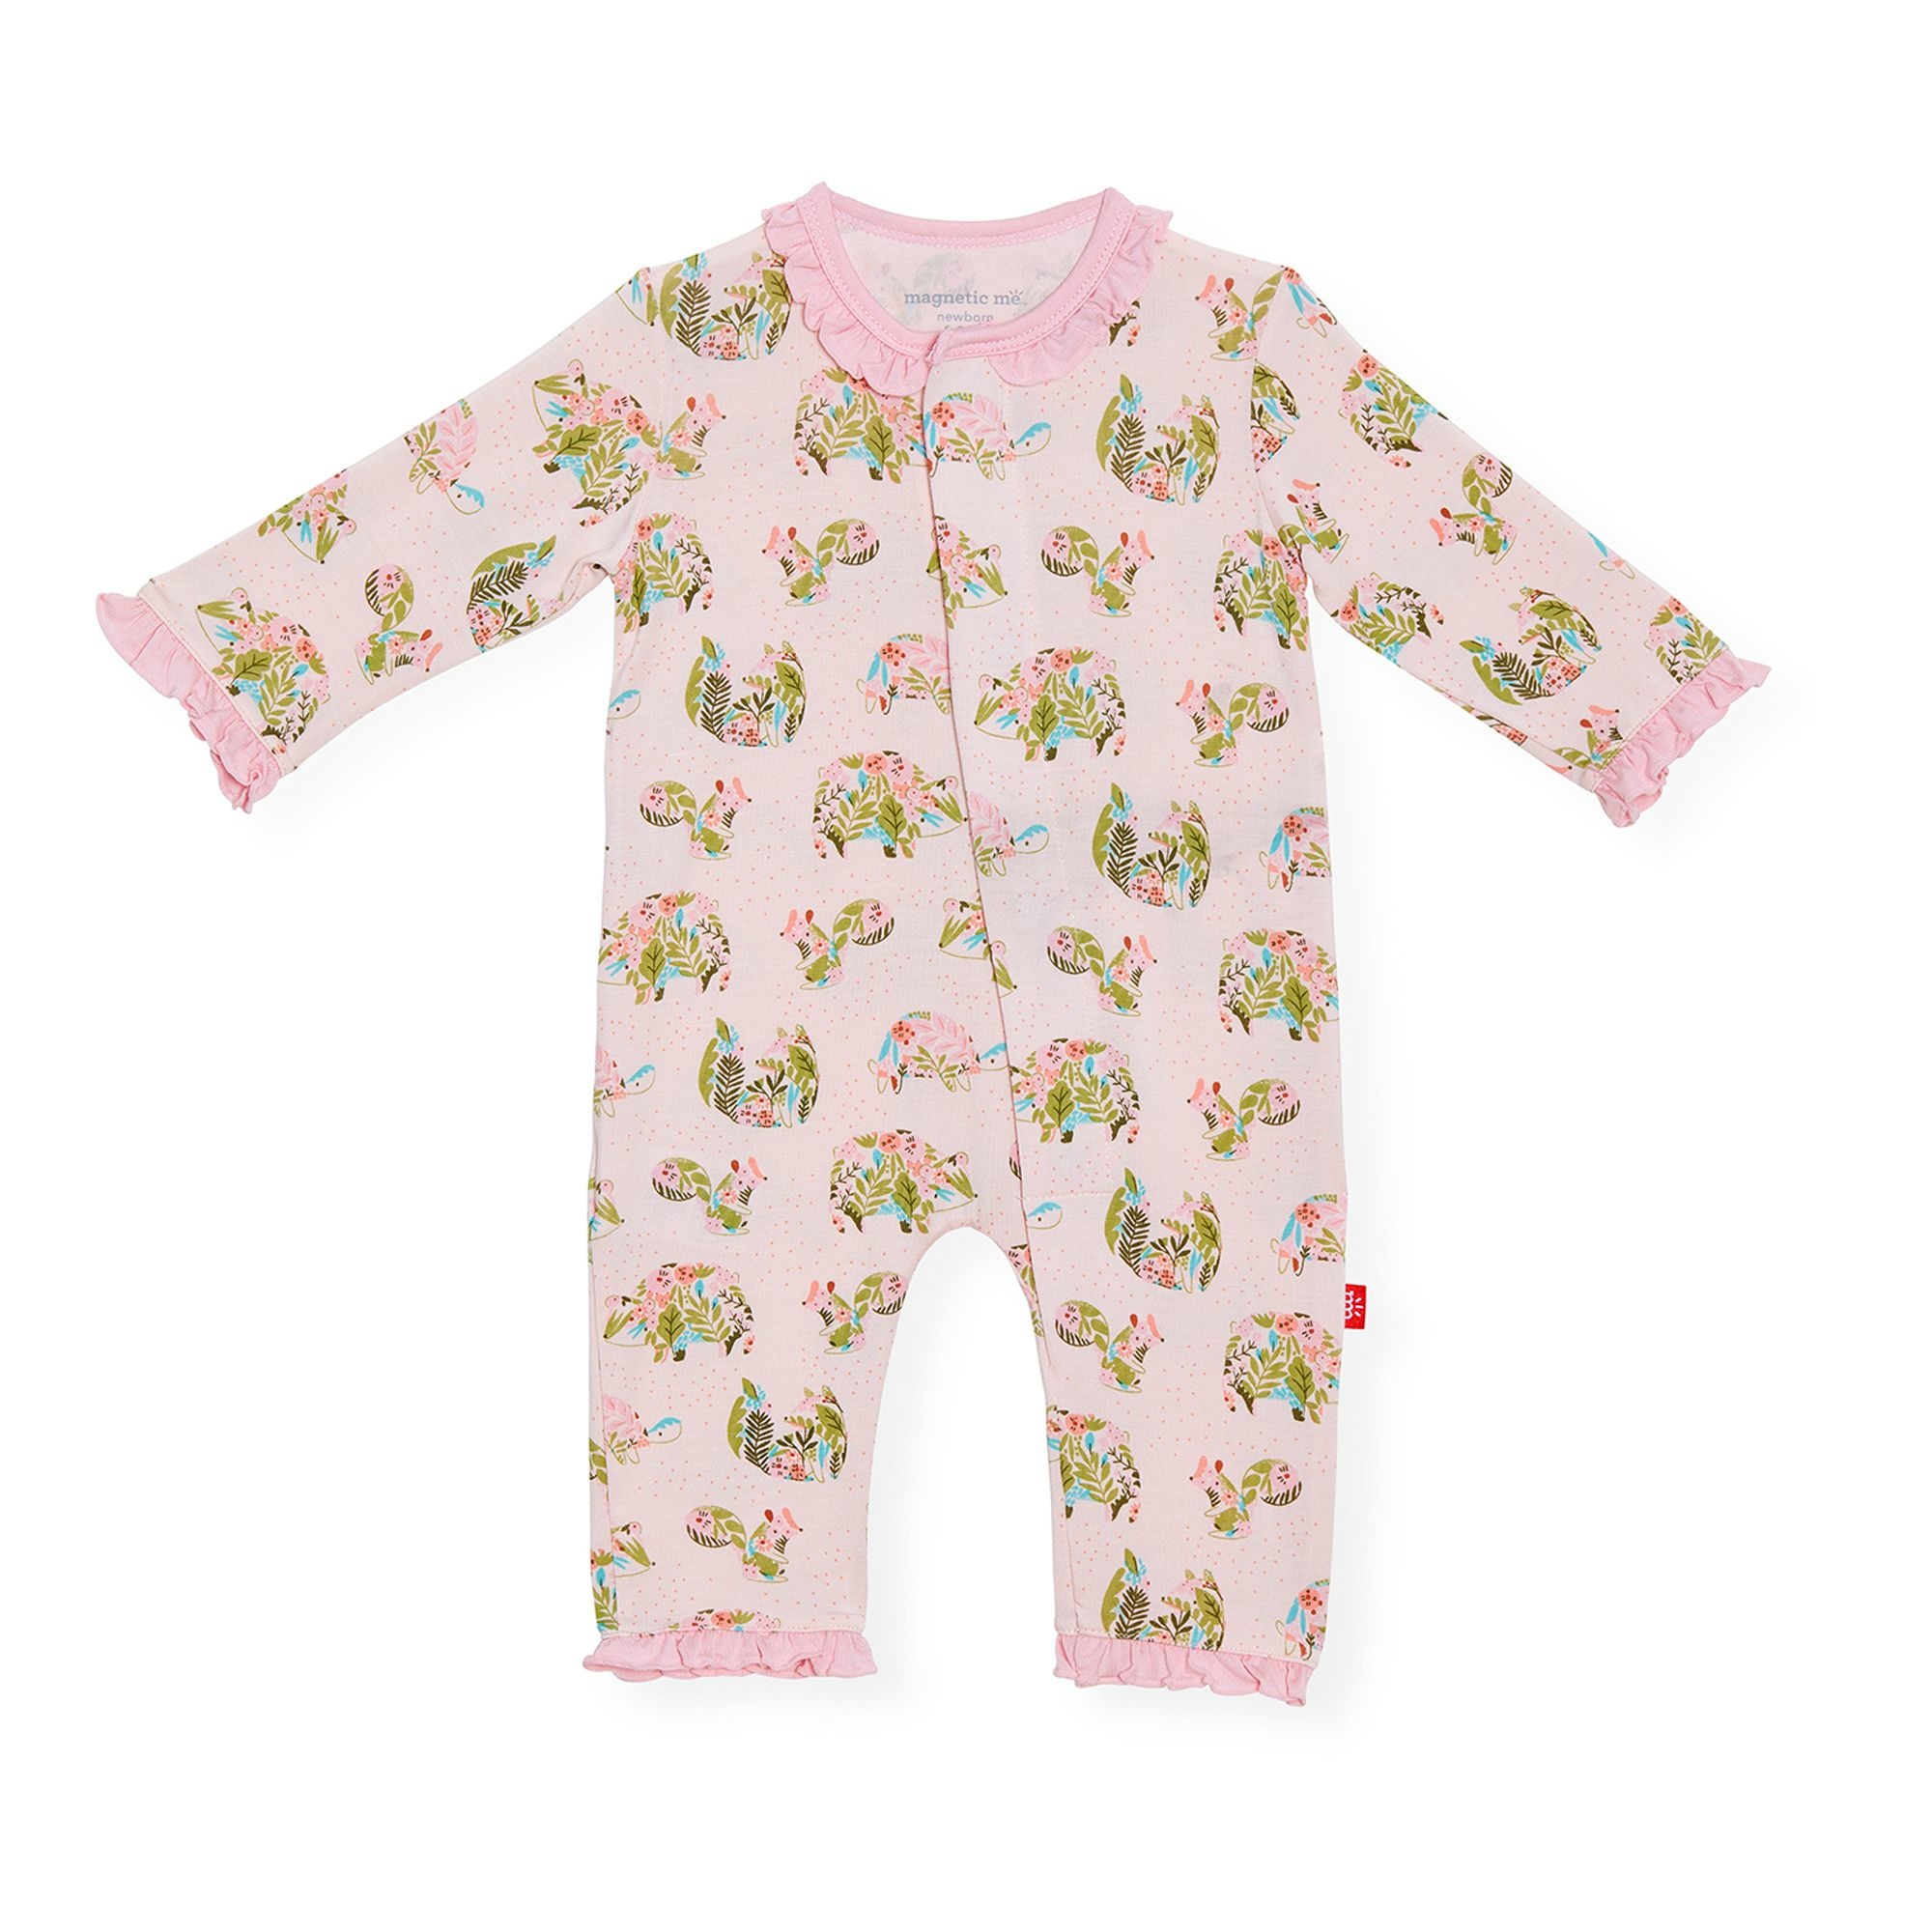 Magnificent Baby Baby Magnetic Modal Coveralls